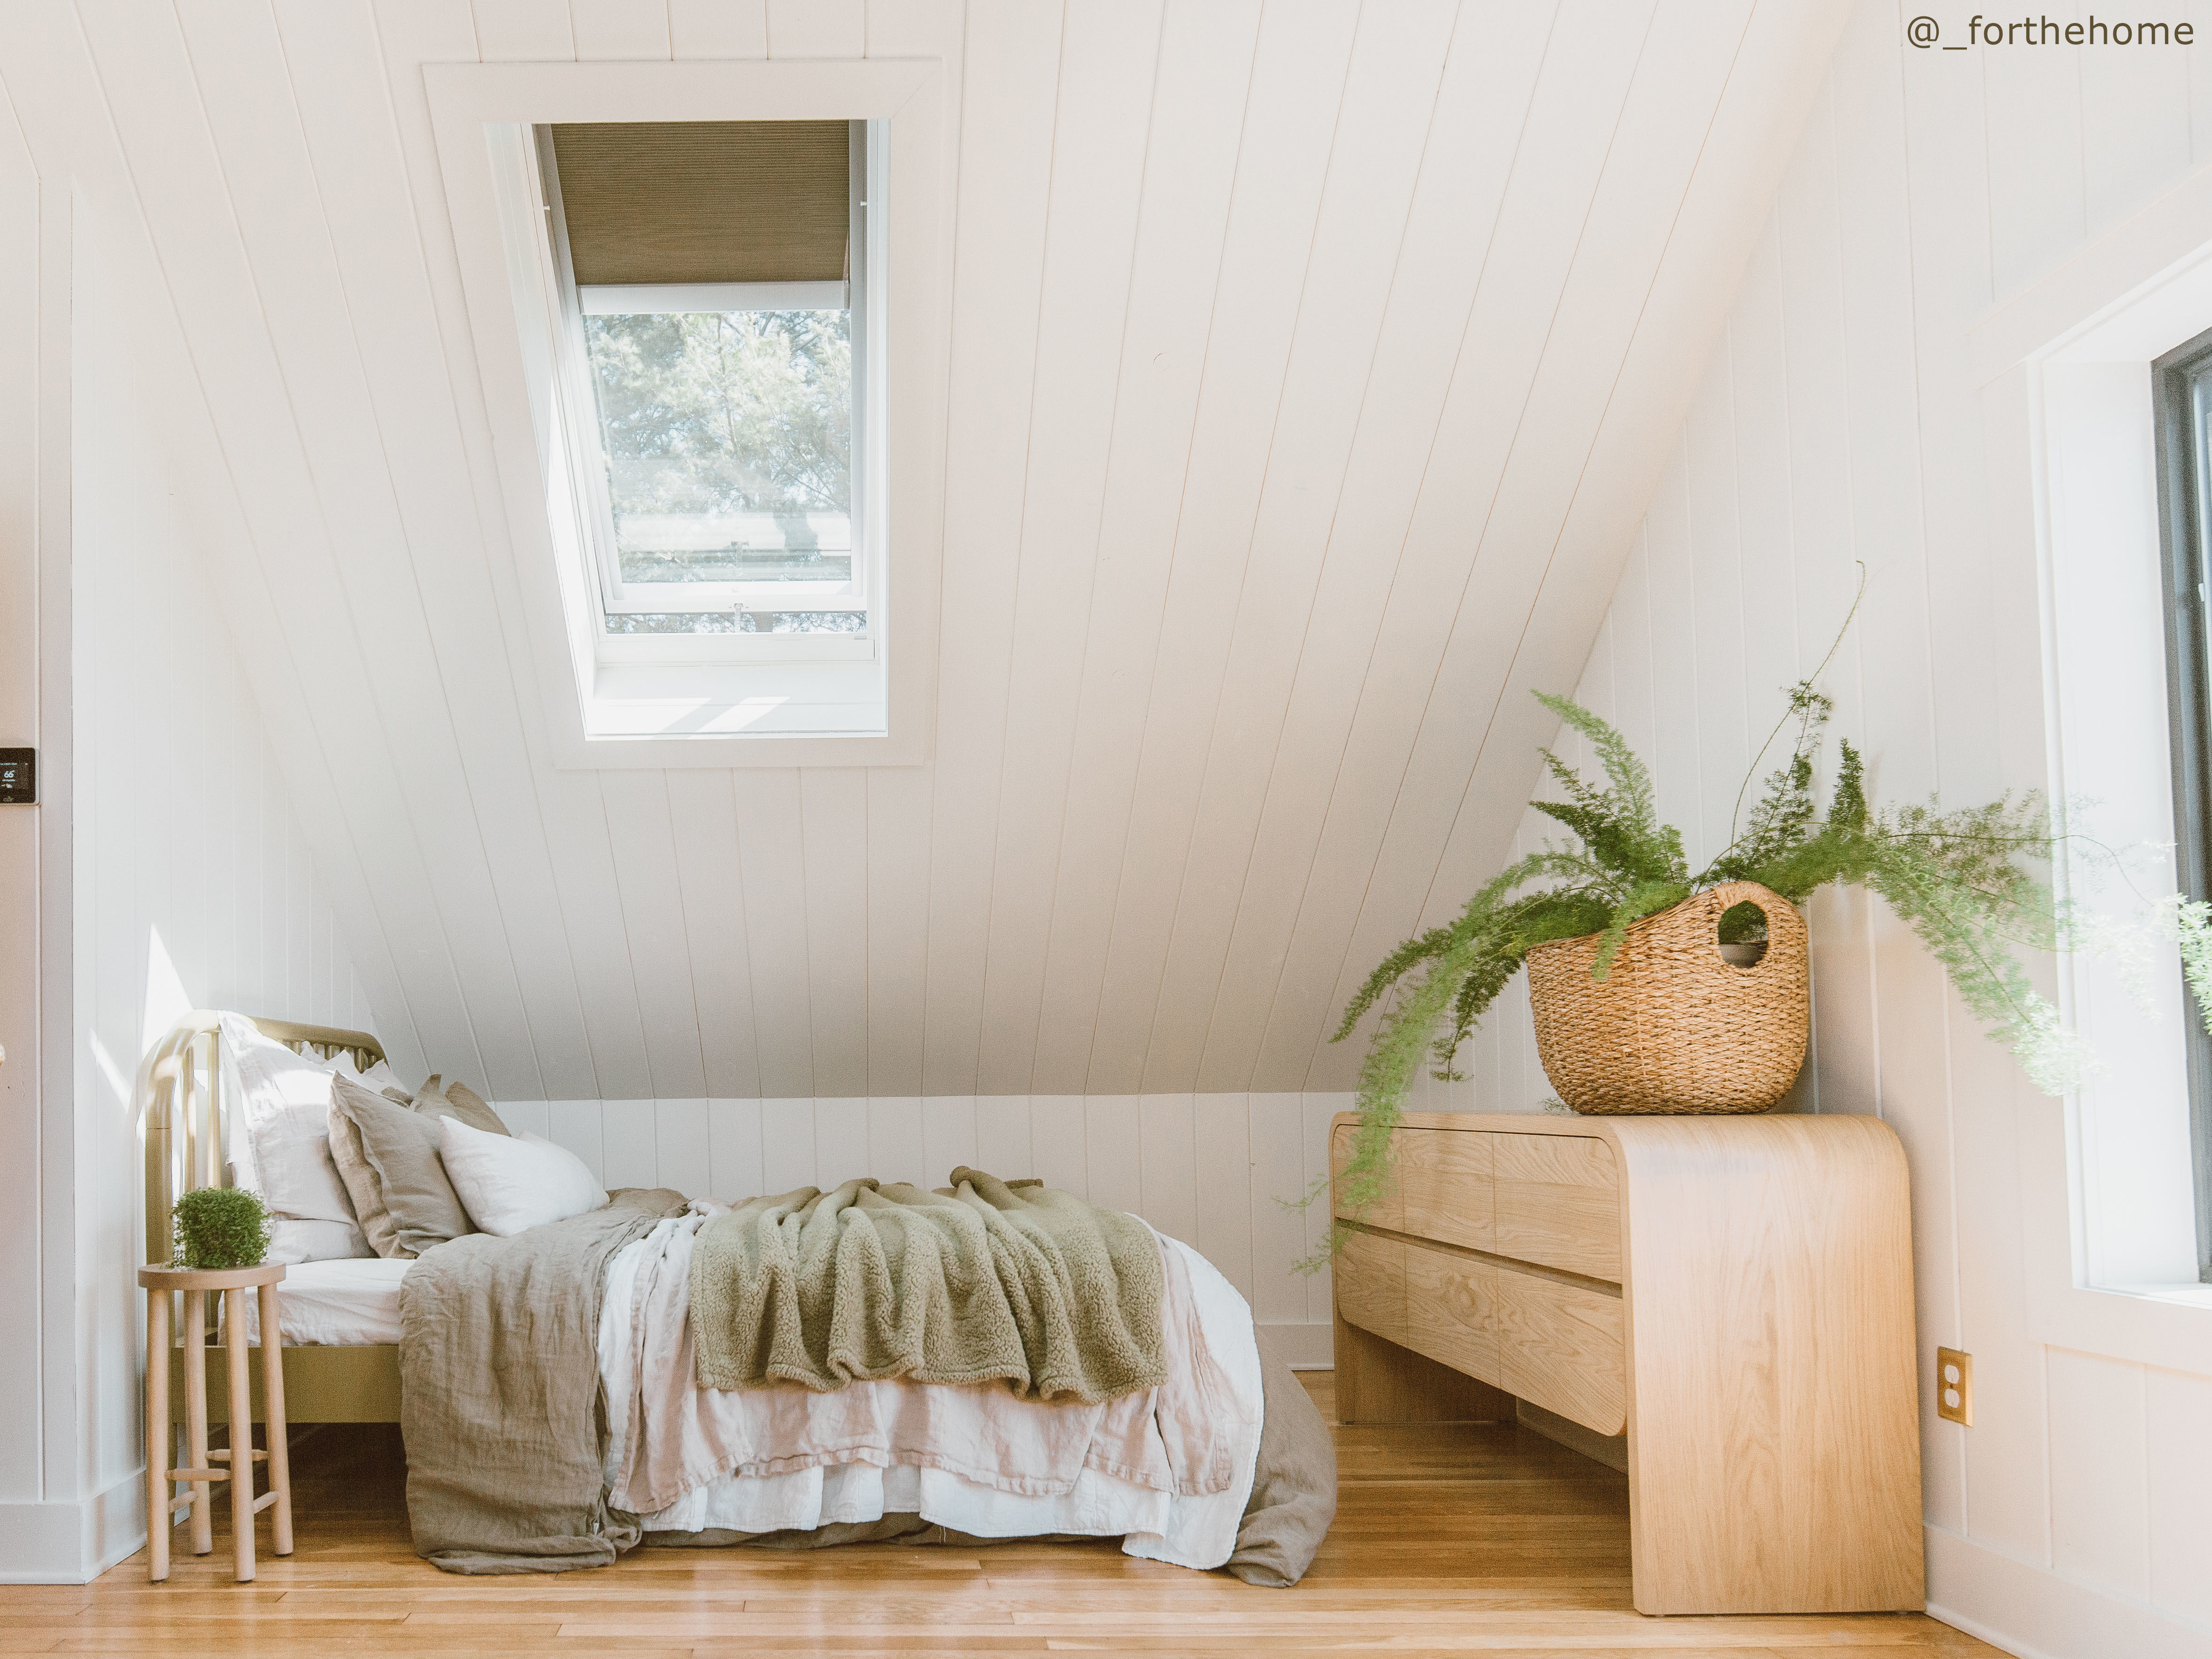 Bedroom with blond wood floors white shiplap walls and a skylight with room darkening blinds.